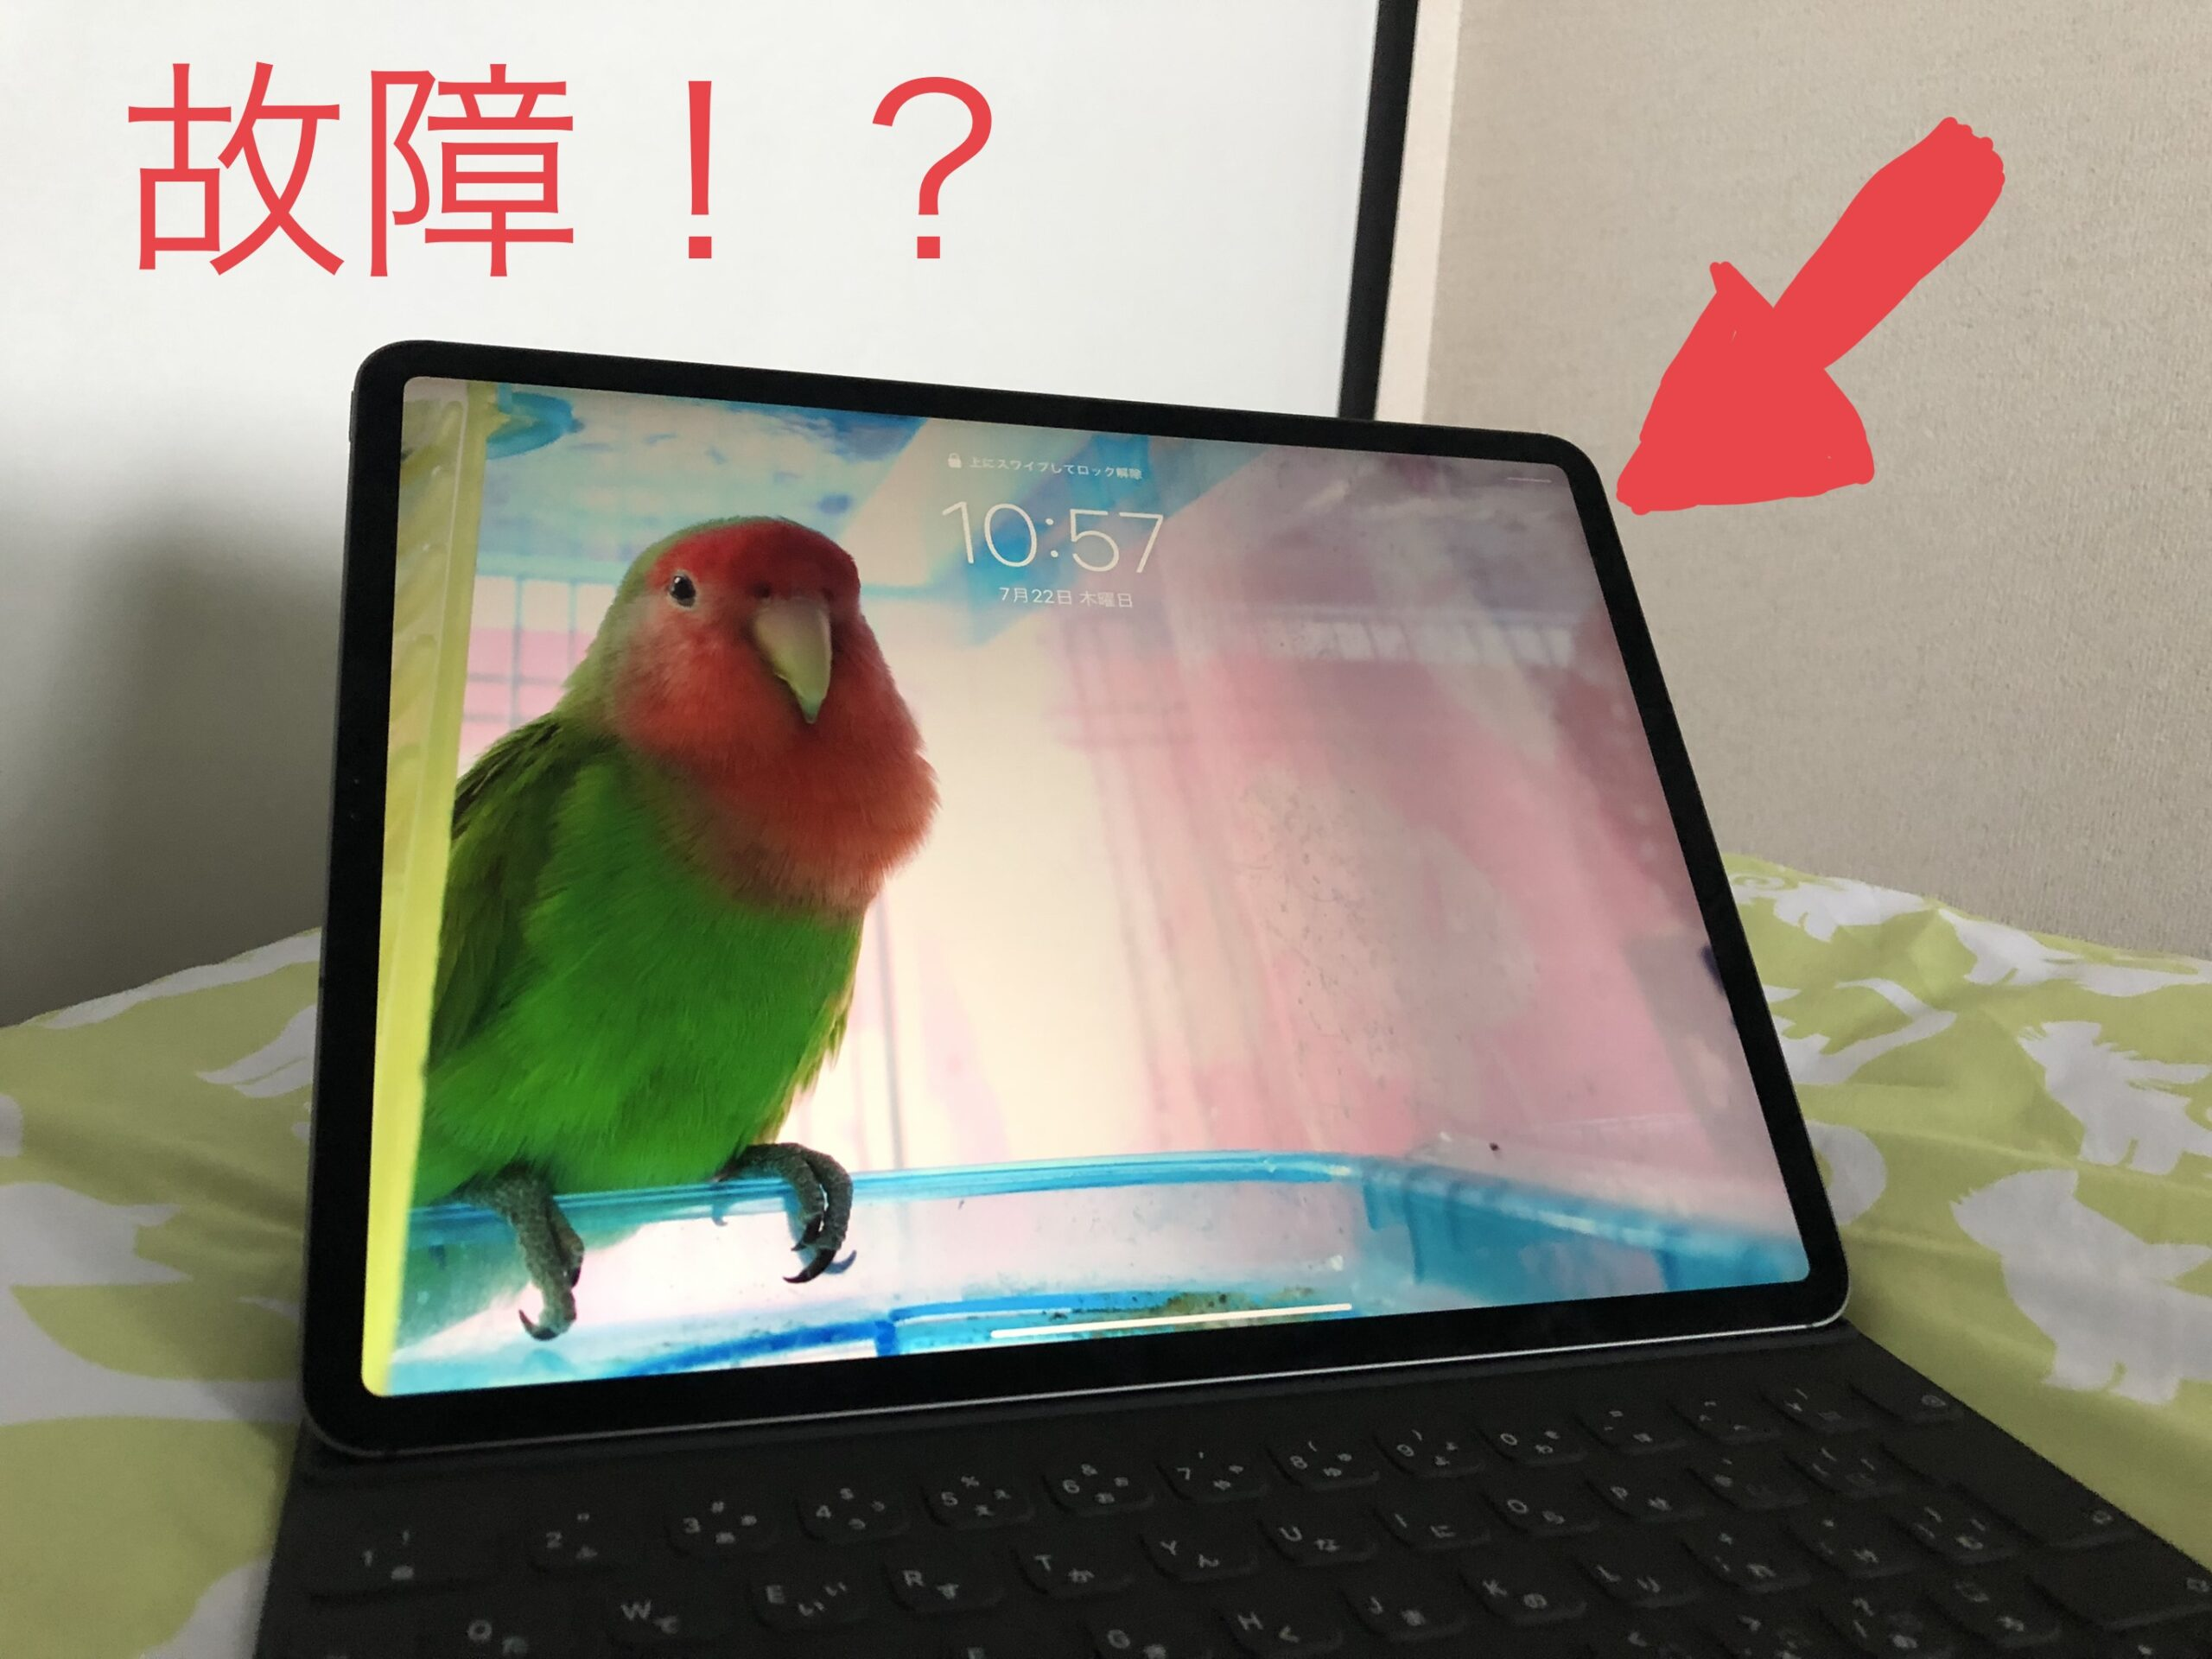 Read more about the article 【問題発生】愛用しているiPadが充電を受け付けなくなった→直った